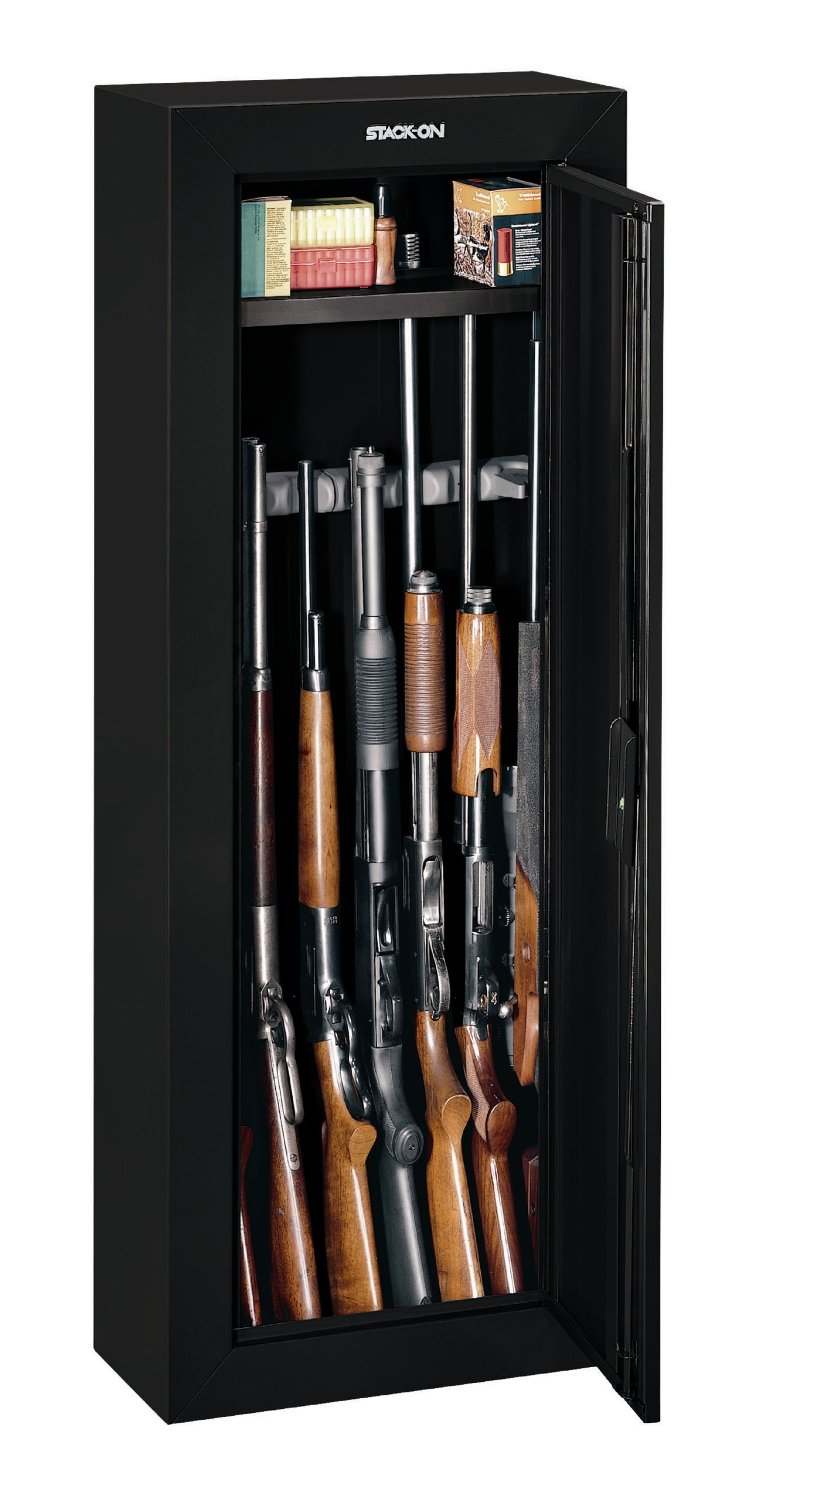 pic showing rifles packed in the Stack-On GCB-908 8-Gun Steel Security Cabinet